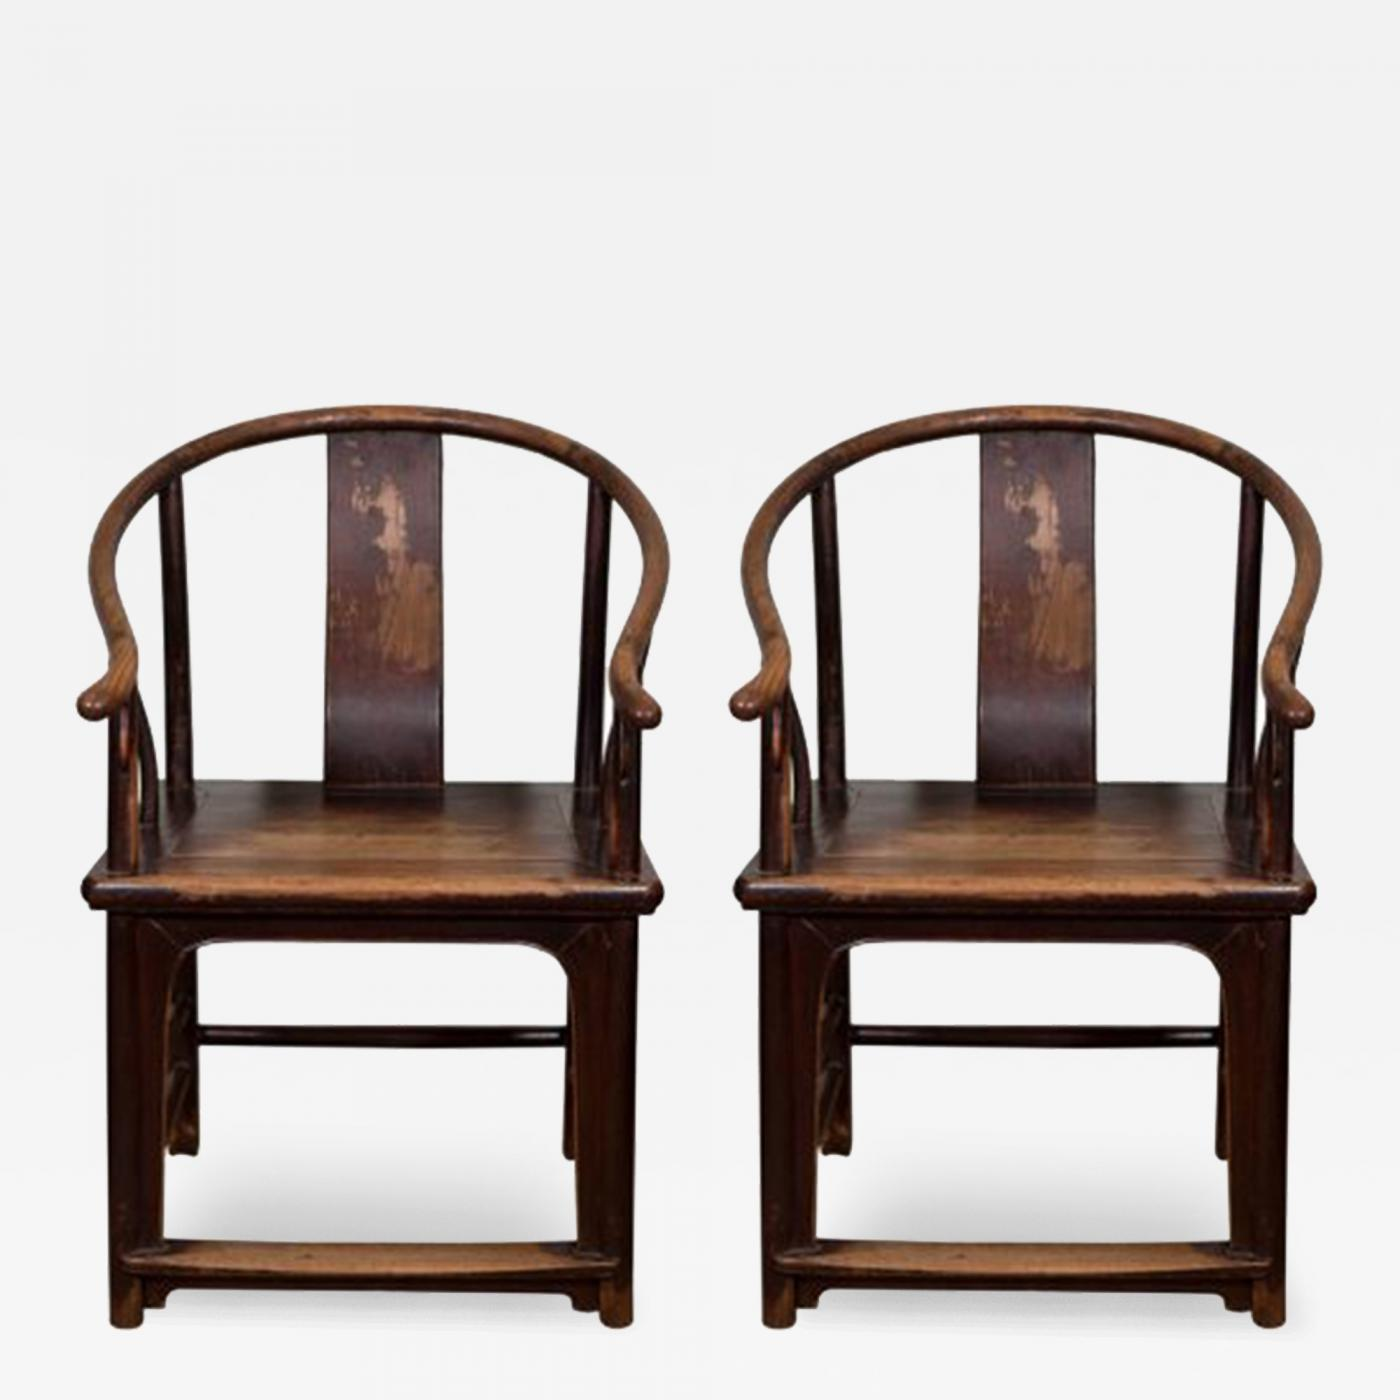 Listings / Furniture / Seating / Armchairs · Pair Of 18th Century Chinese Horseshoe  Chairs